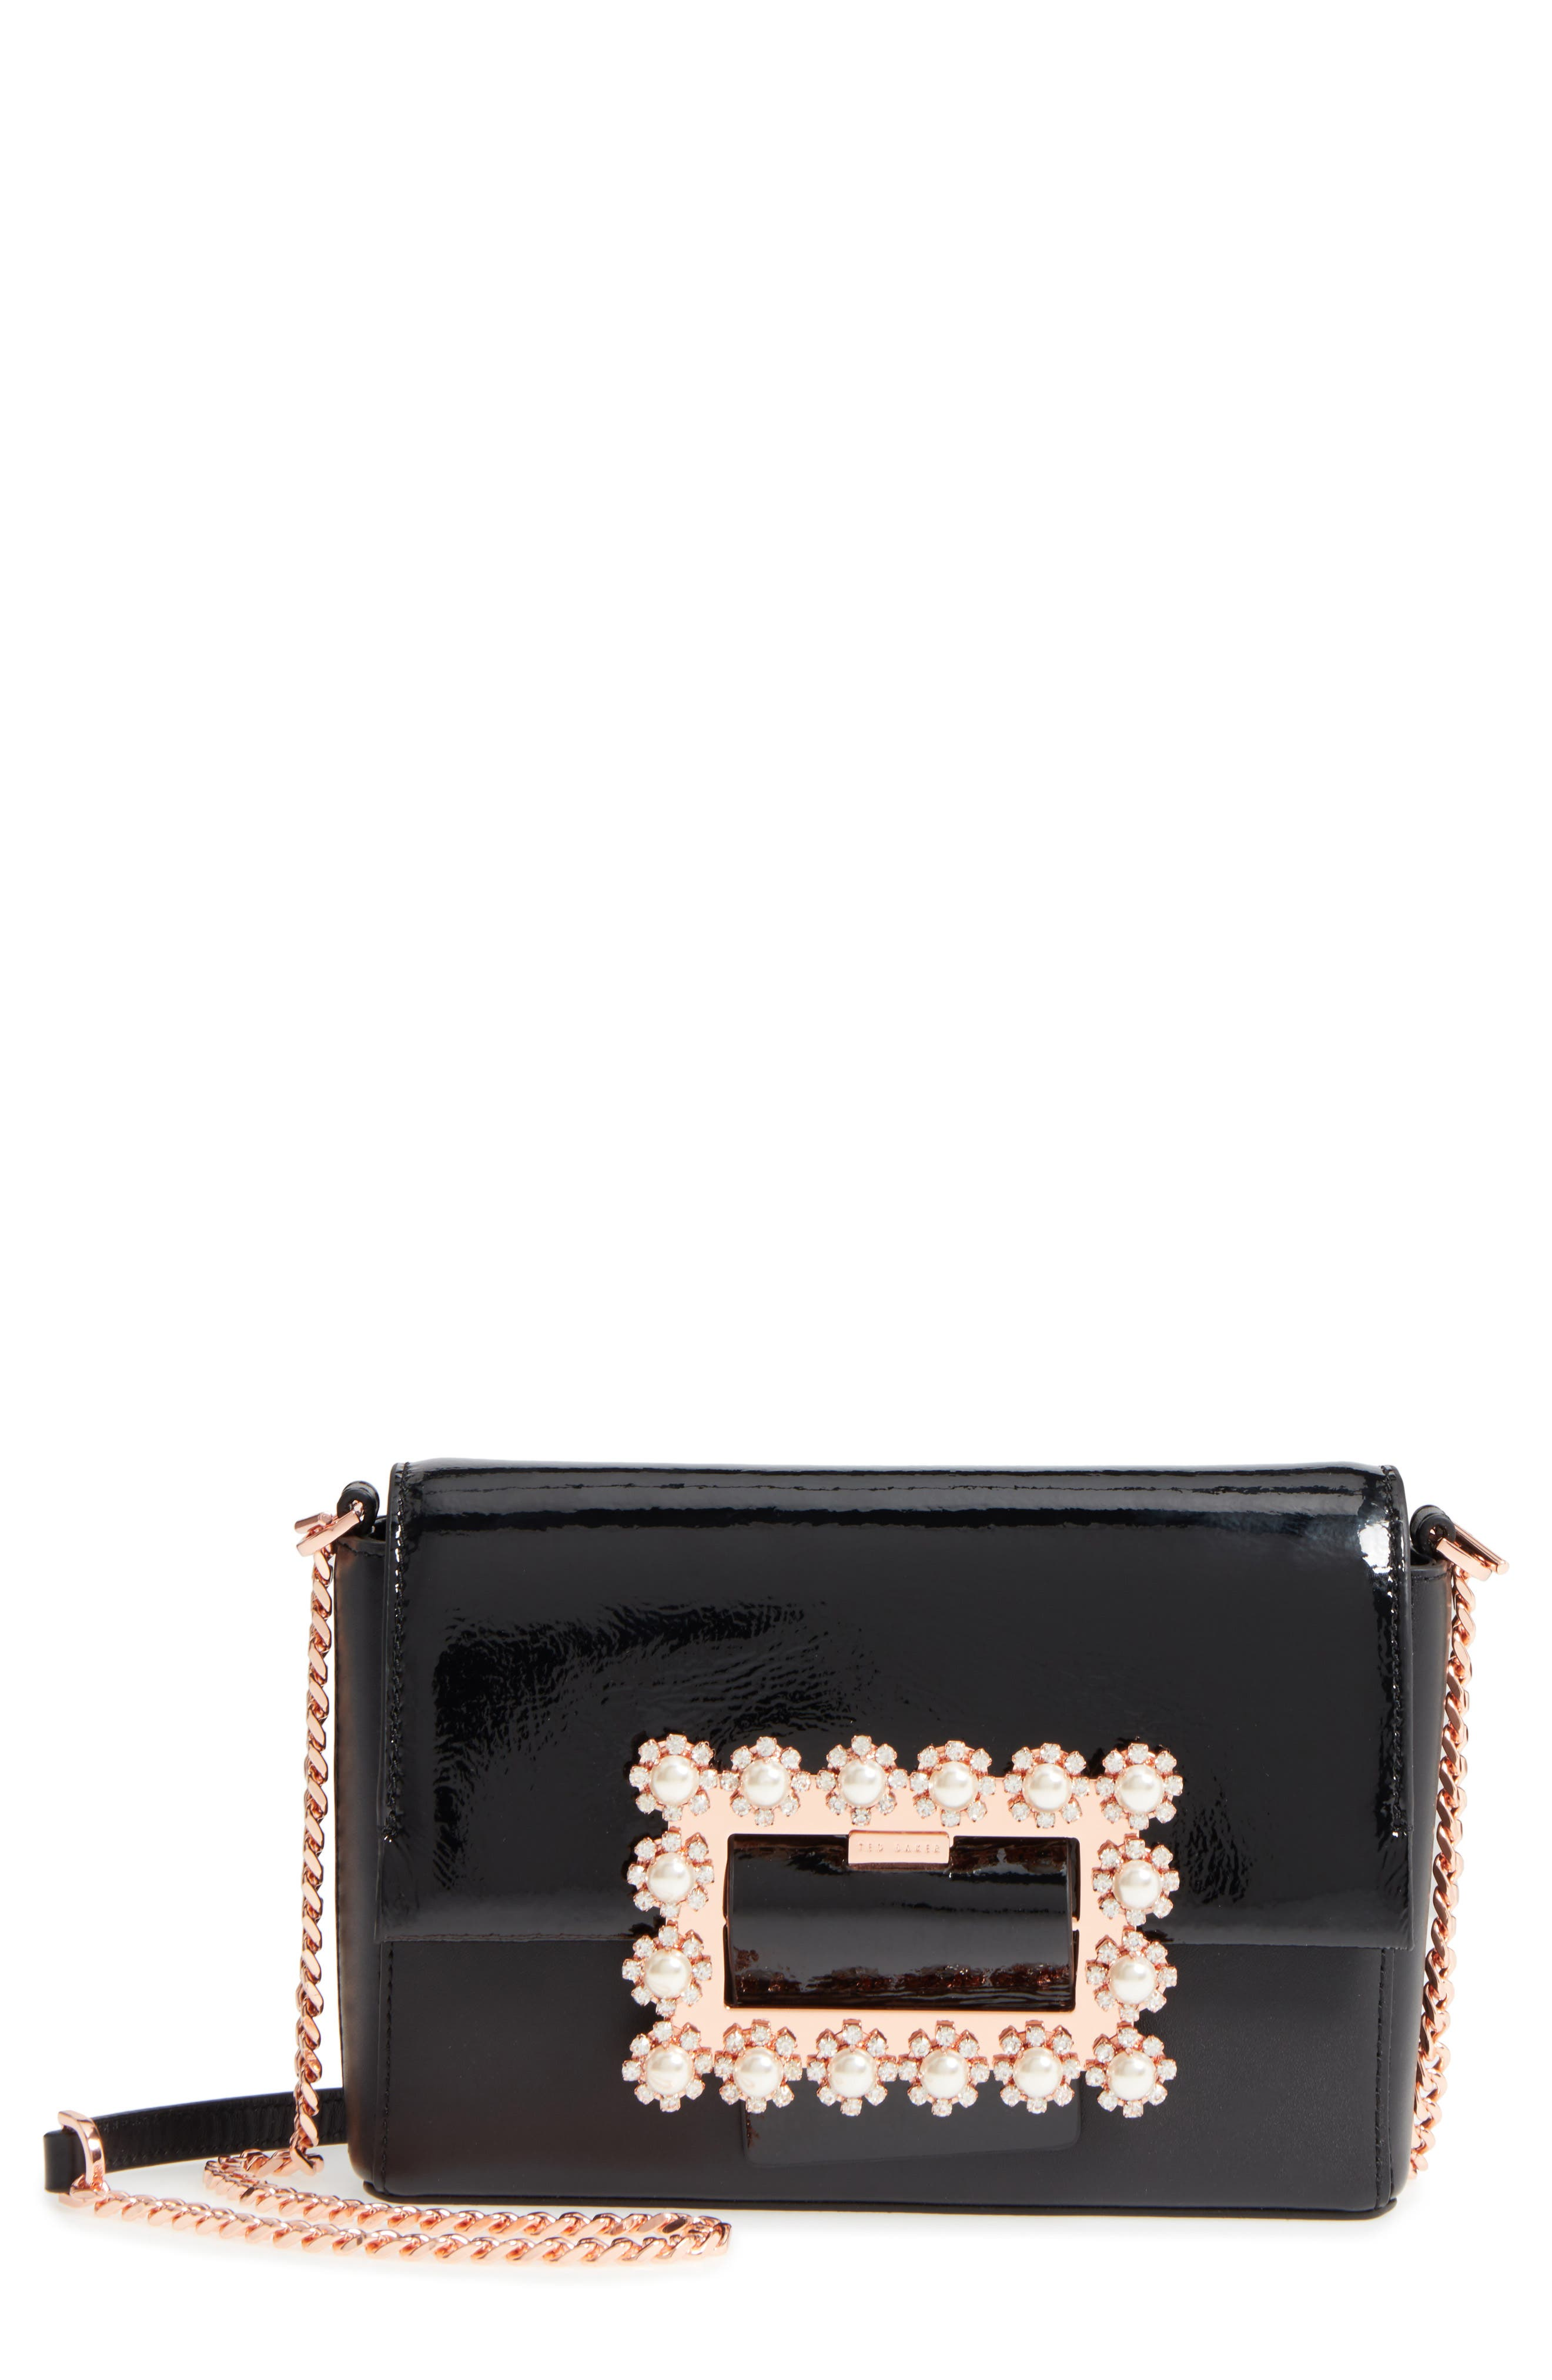 Peonyy Embellished Buckle Leather Clutch,                         Main,                         color, Black